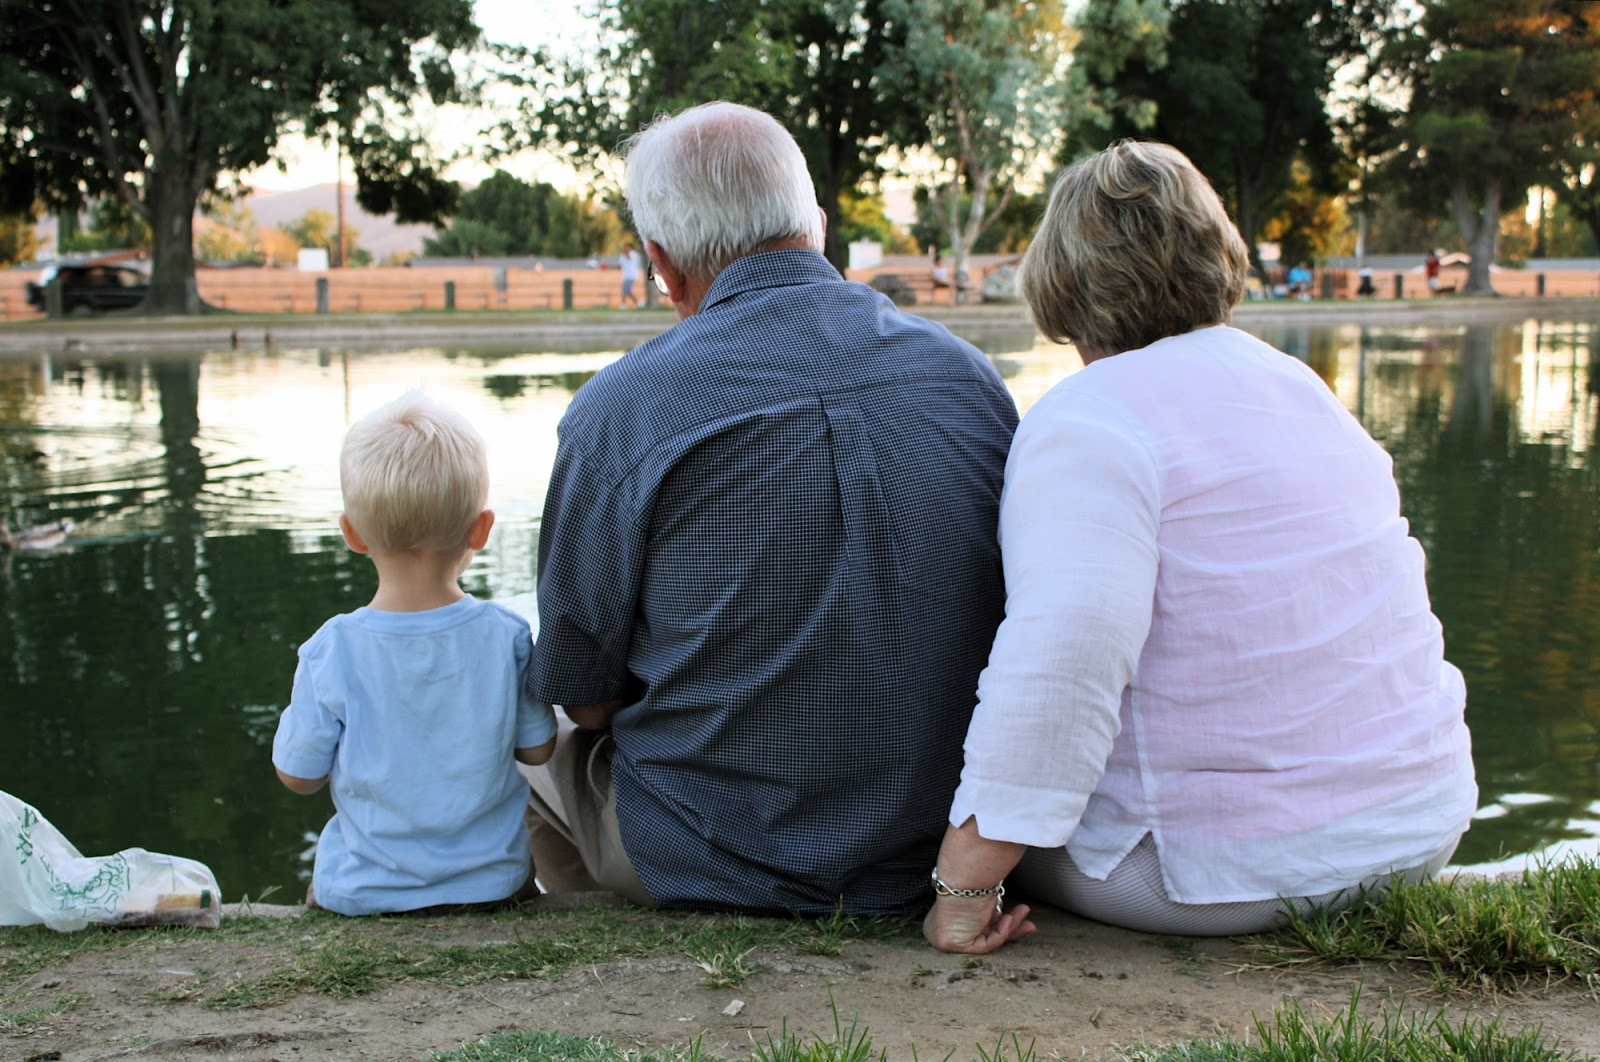 Child Protection Lessons: Grandparents caring for children